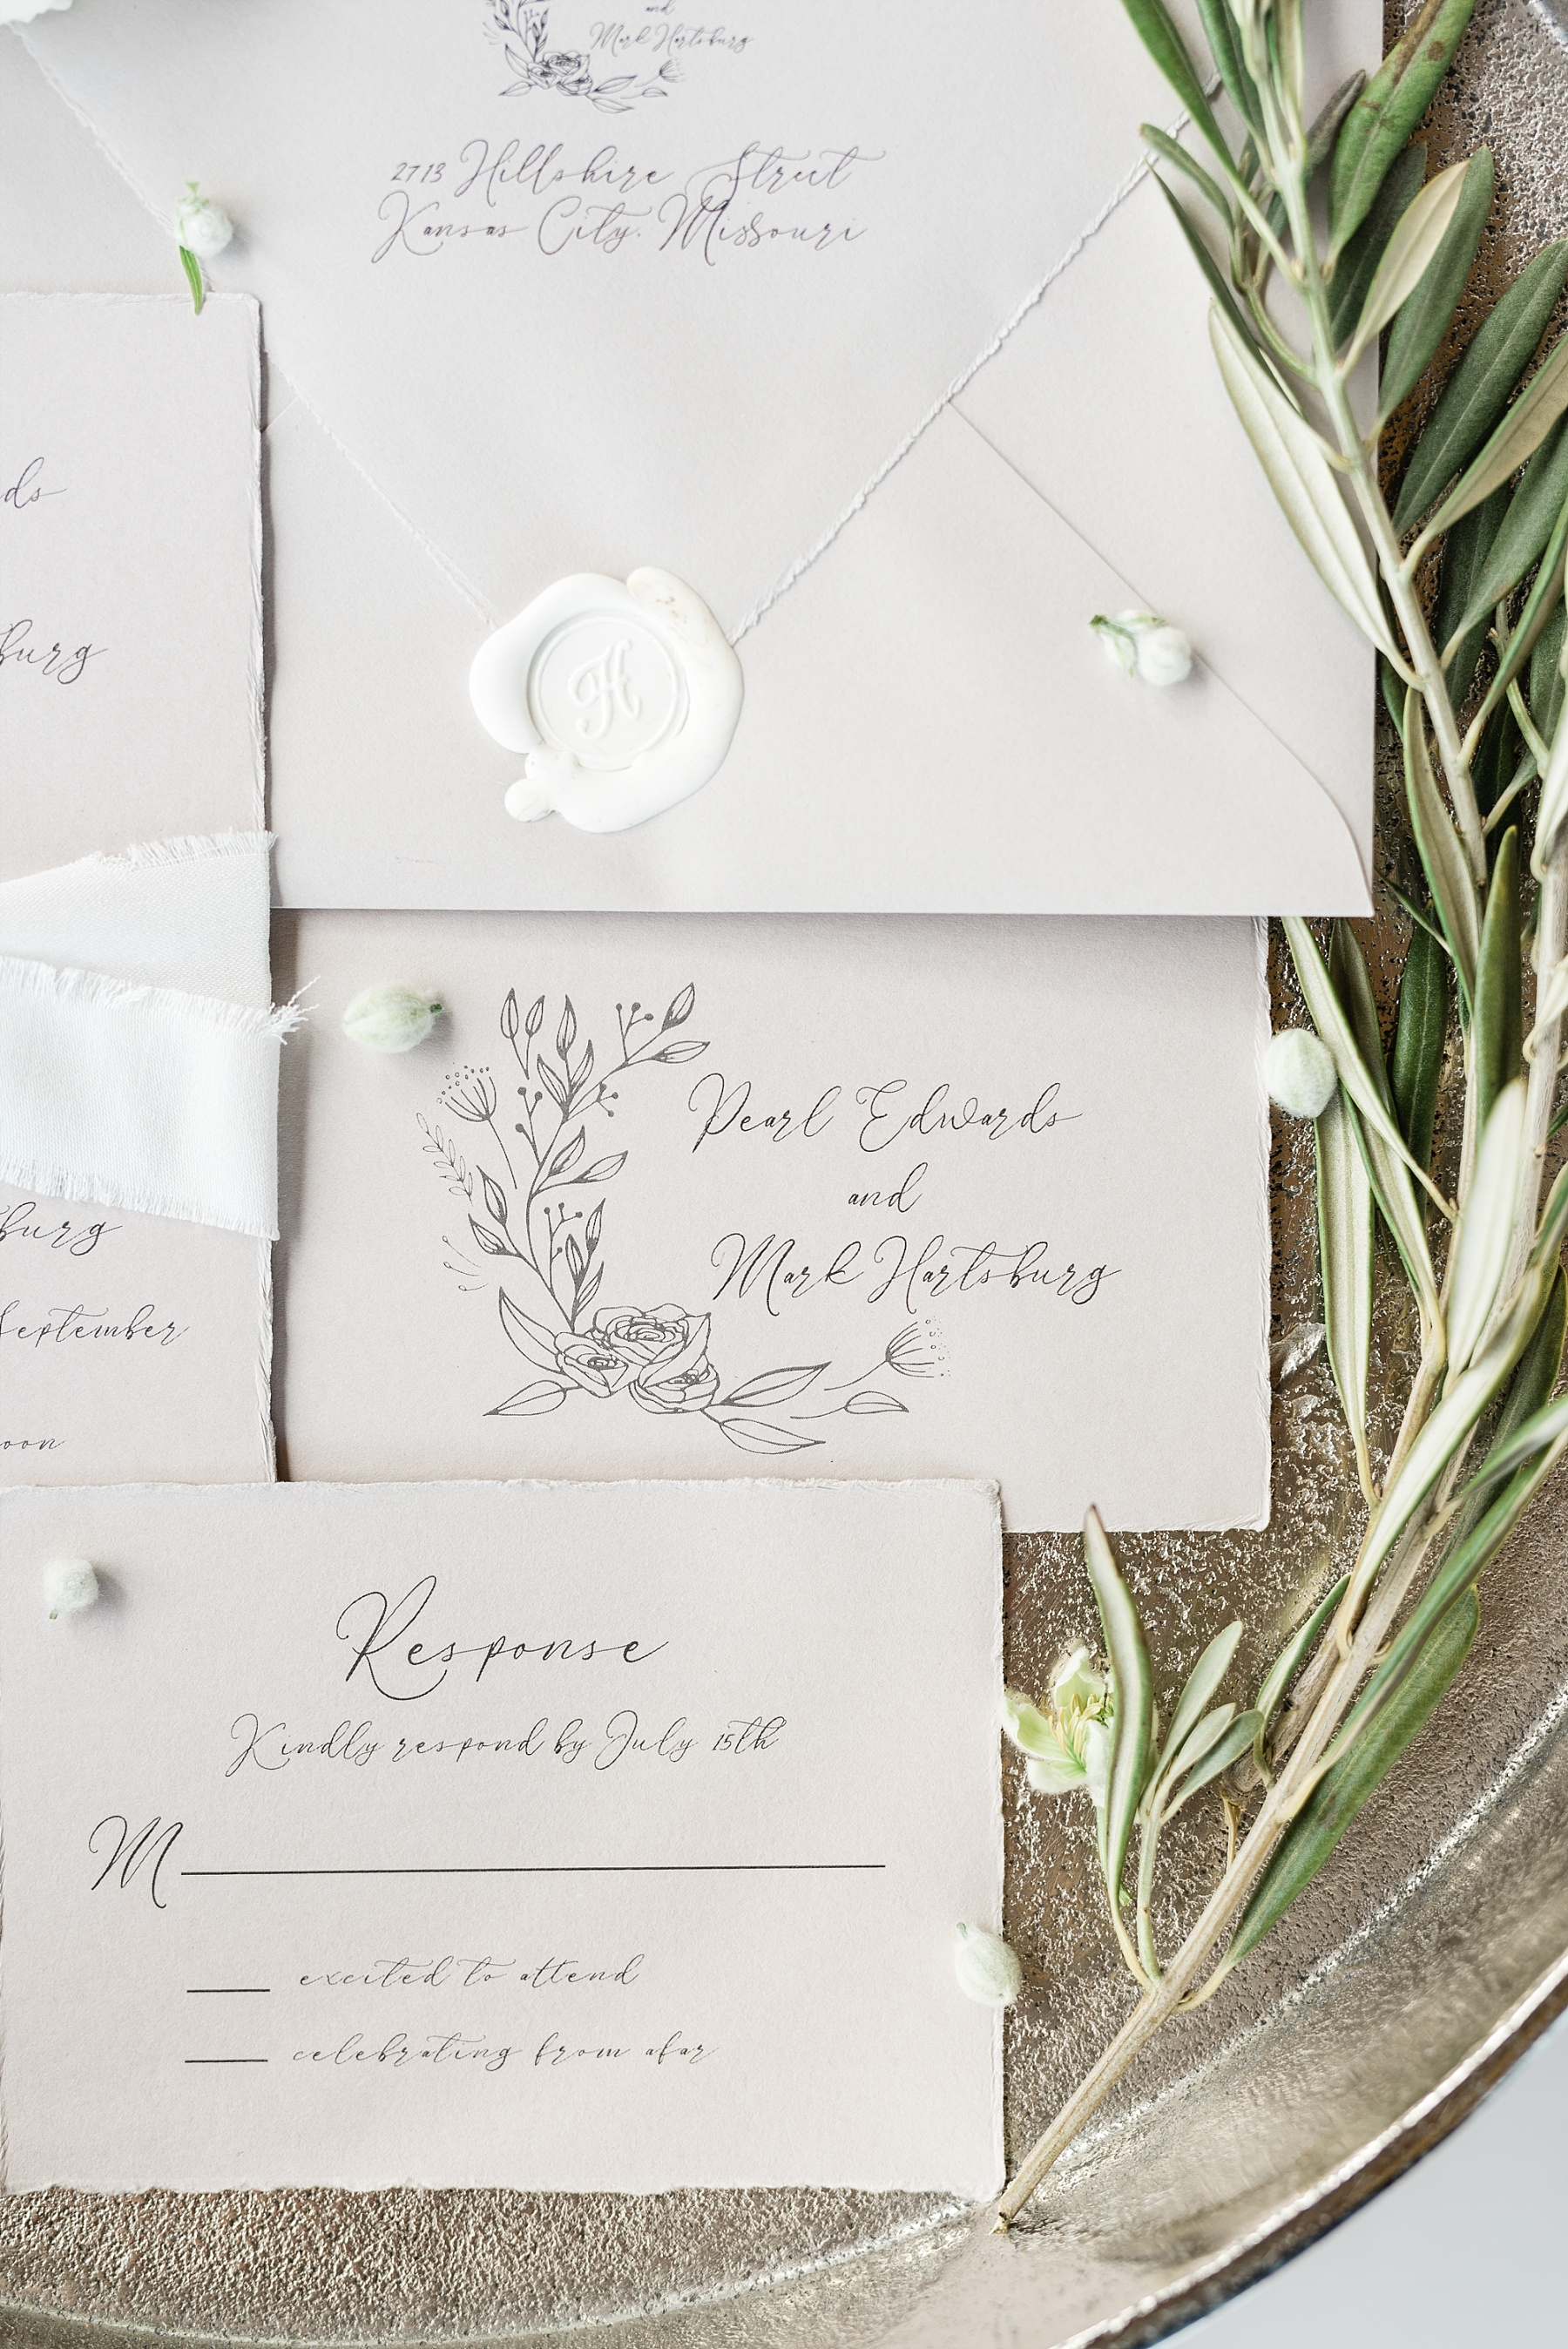 Textural Organic Wedding in All White Venue by Kelsi Kliethermes Wedding Photographer - Missouri, Midwest, and Destinations_0009.jpg